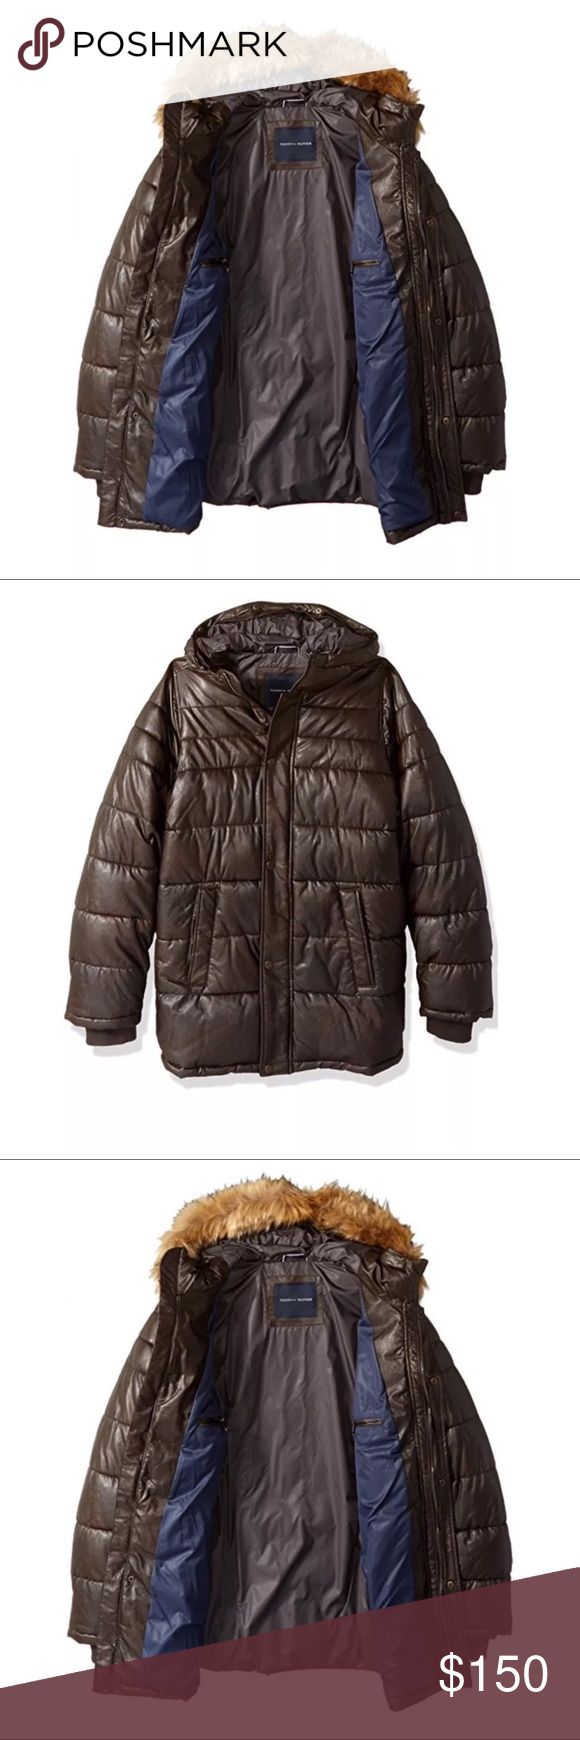 Tommy Hilfiger Men's Faux Leather Parka NEW Tommy Hilfiger Men's Tall Size Quilted Faux Leather Parka with Removable Faux Fur Trimmed Hood NEW WITH TAGS 🚫THESE ARE SIZE BIG AND TALL, SO Large Tall and 2XLT IS WHAT I HAVE 🚫 Tommy Hilfiger Jackets & Coats